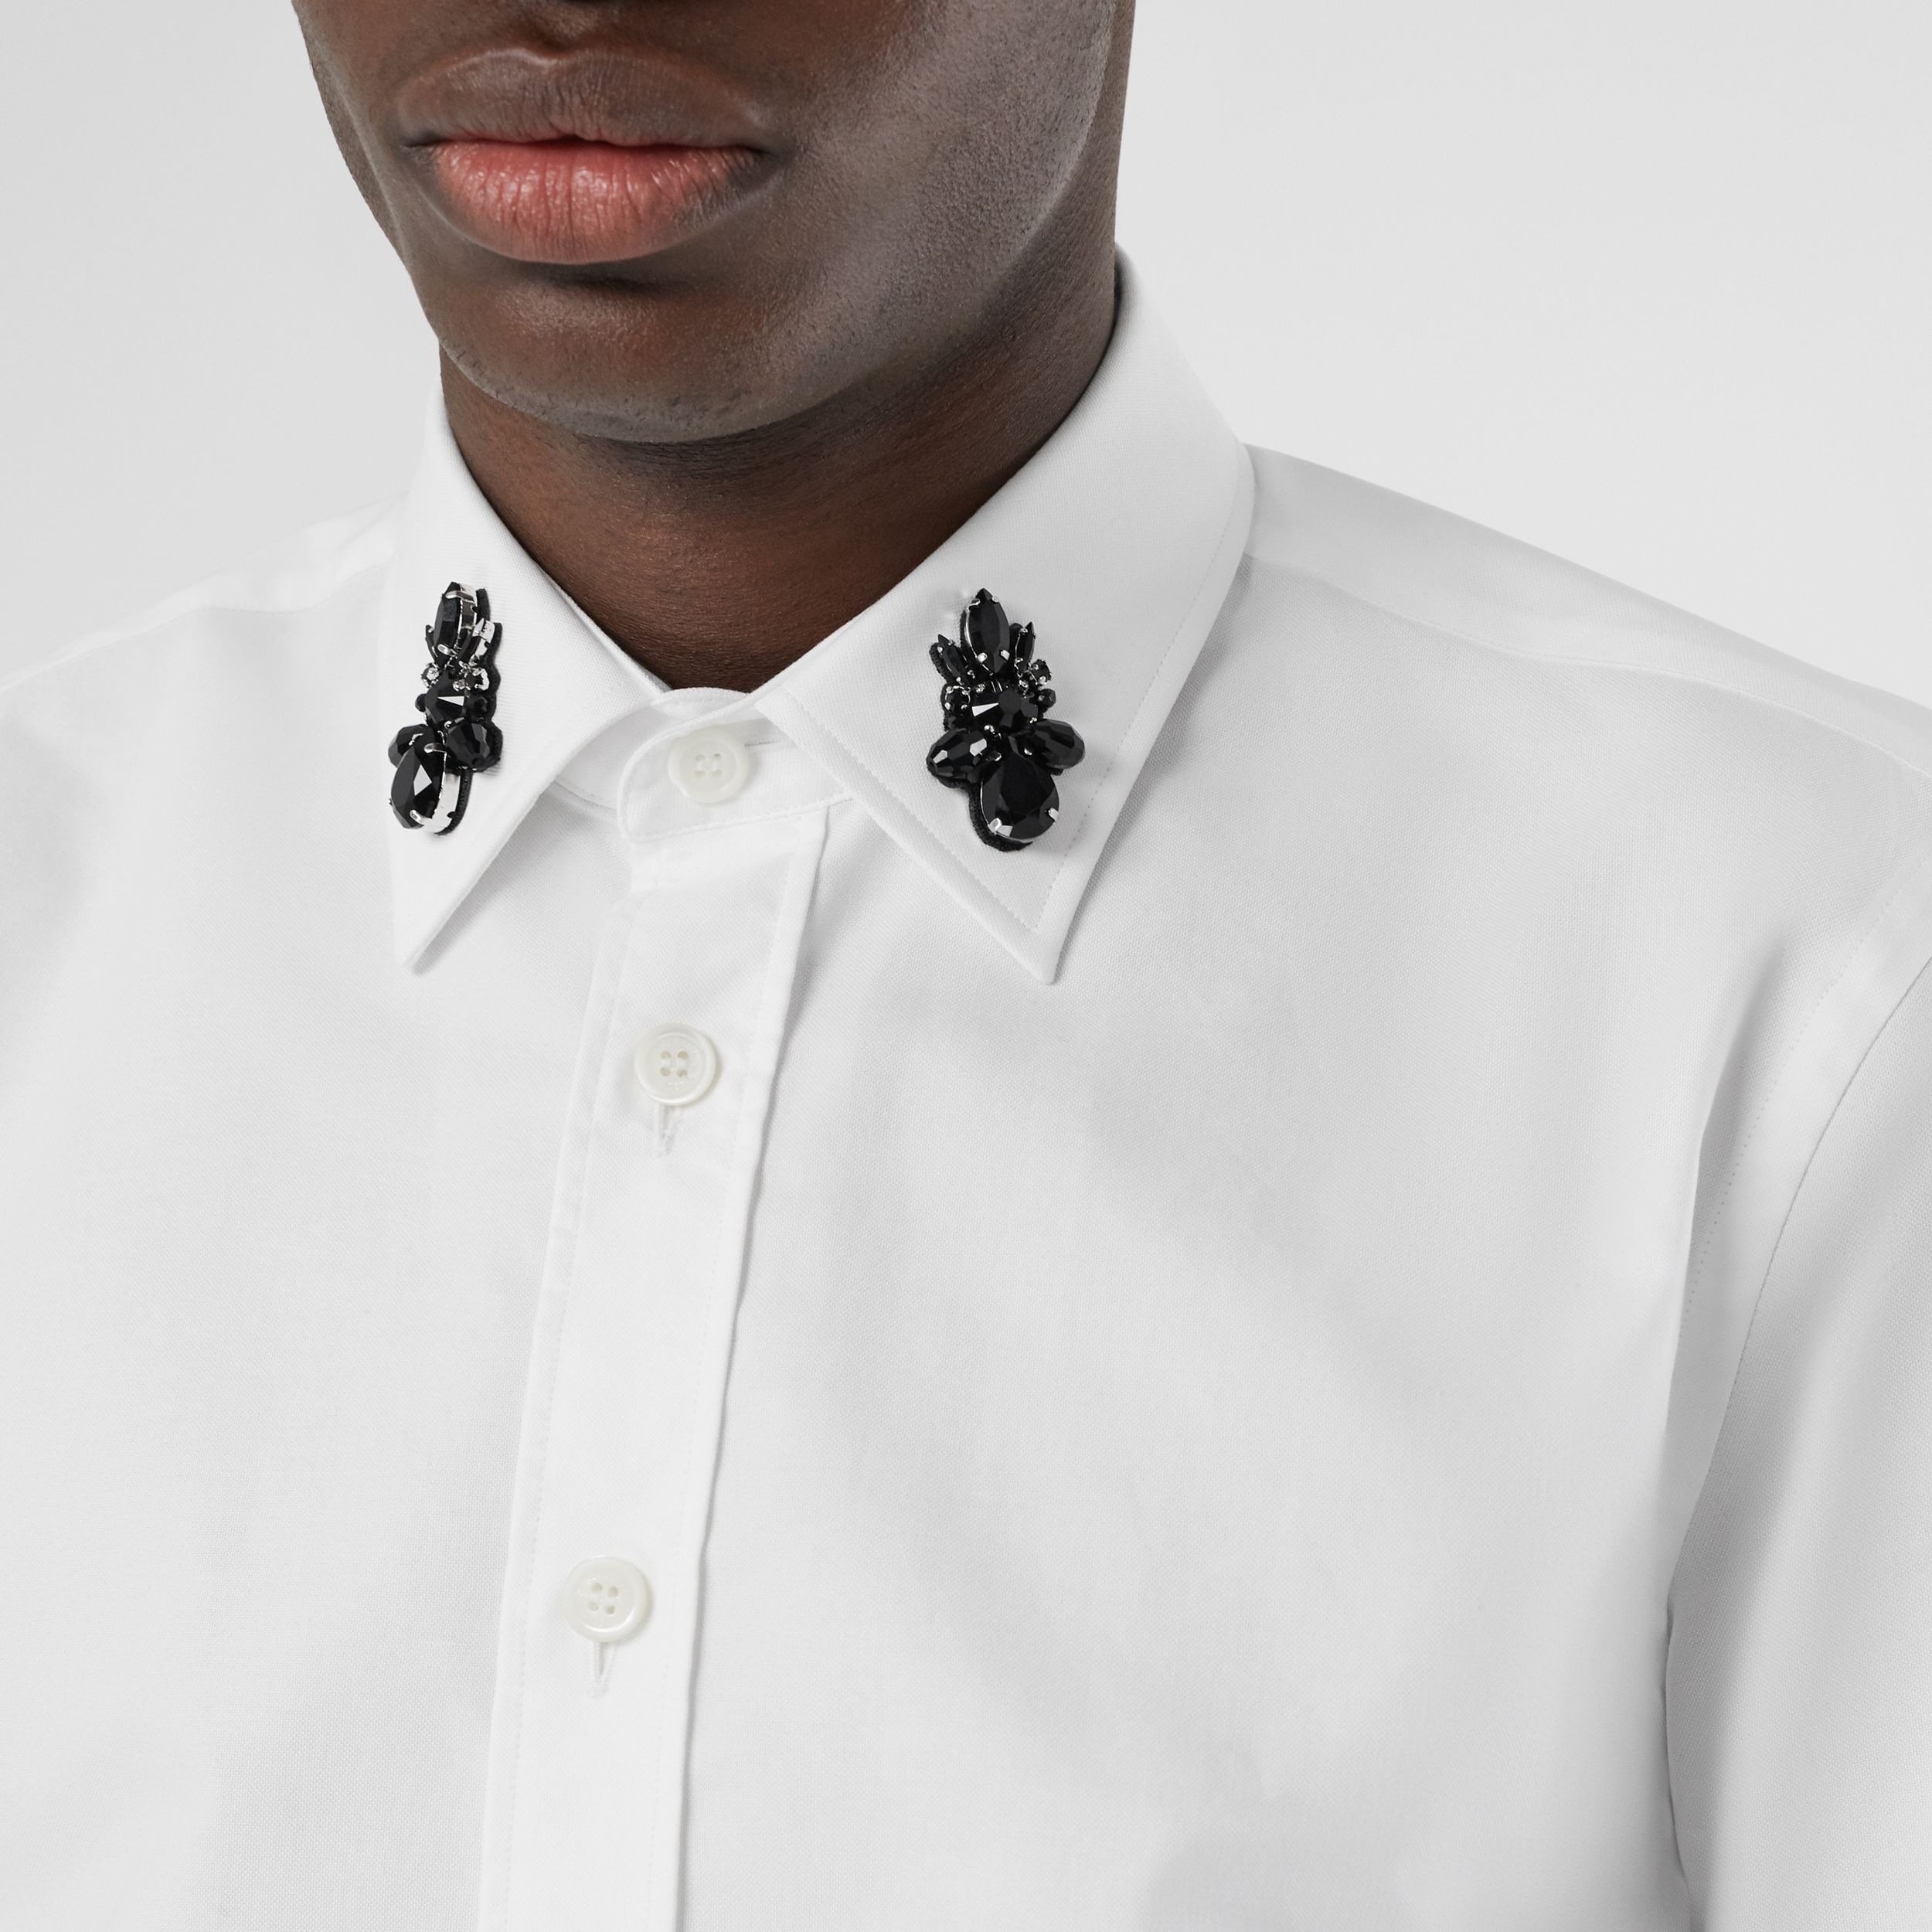 Classic Fit Crystal Detail Cotton Oxford Dress Shirt in White - Men | Burberry - 2